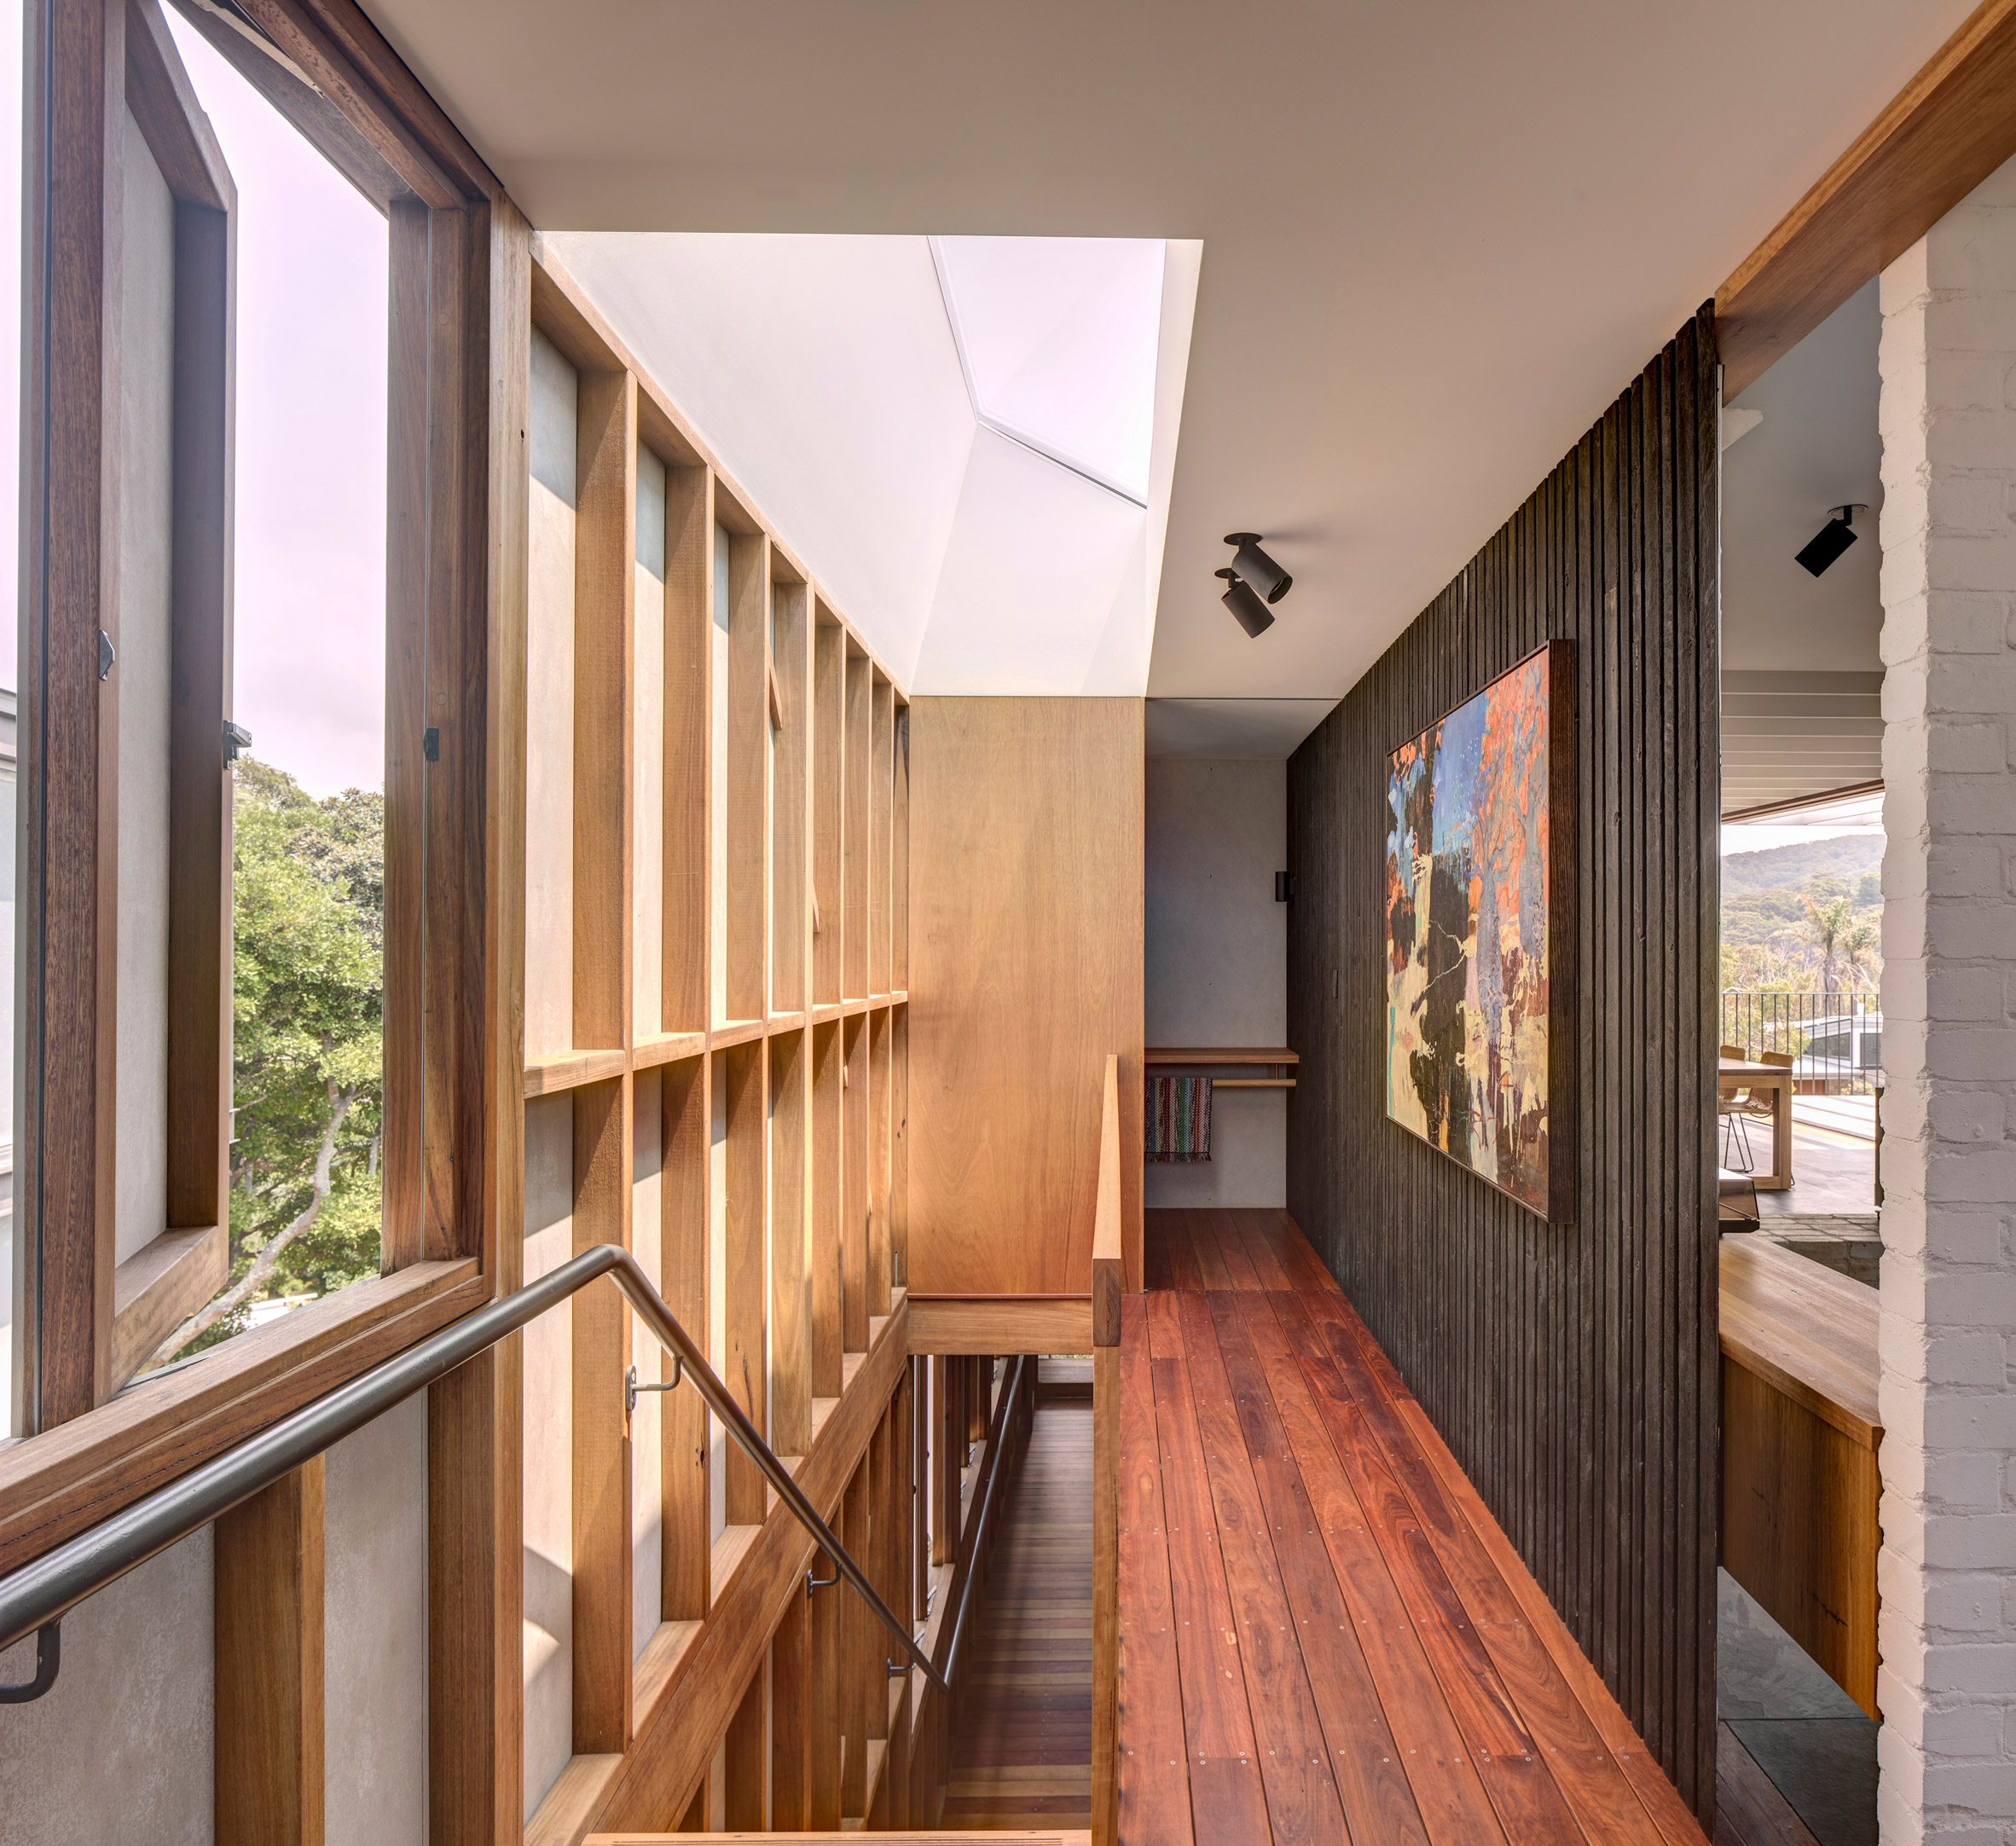 Breezeway House by David Boyle